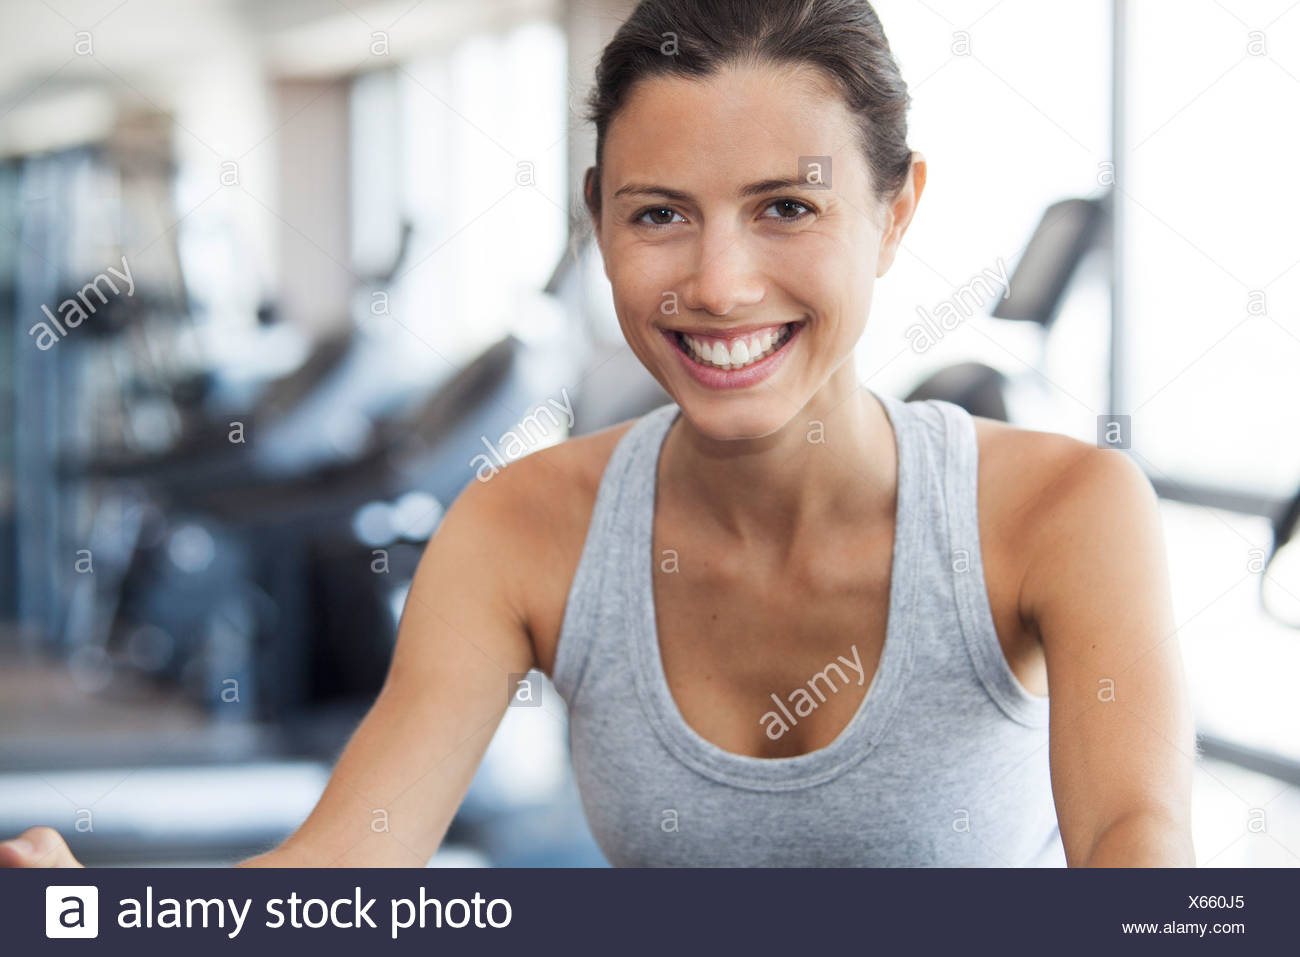 Young woman using exercise machine at gym - Stock Image